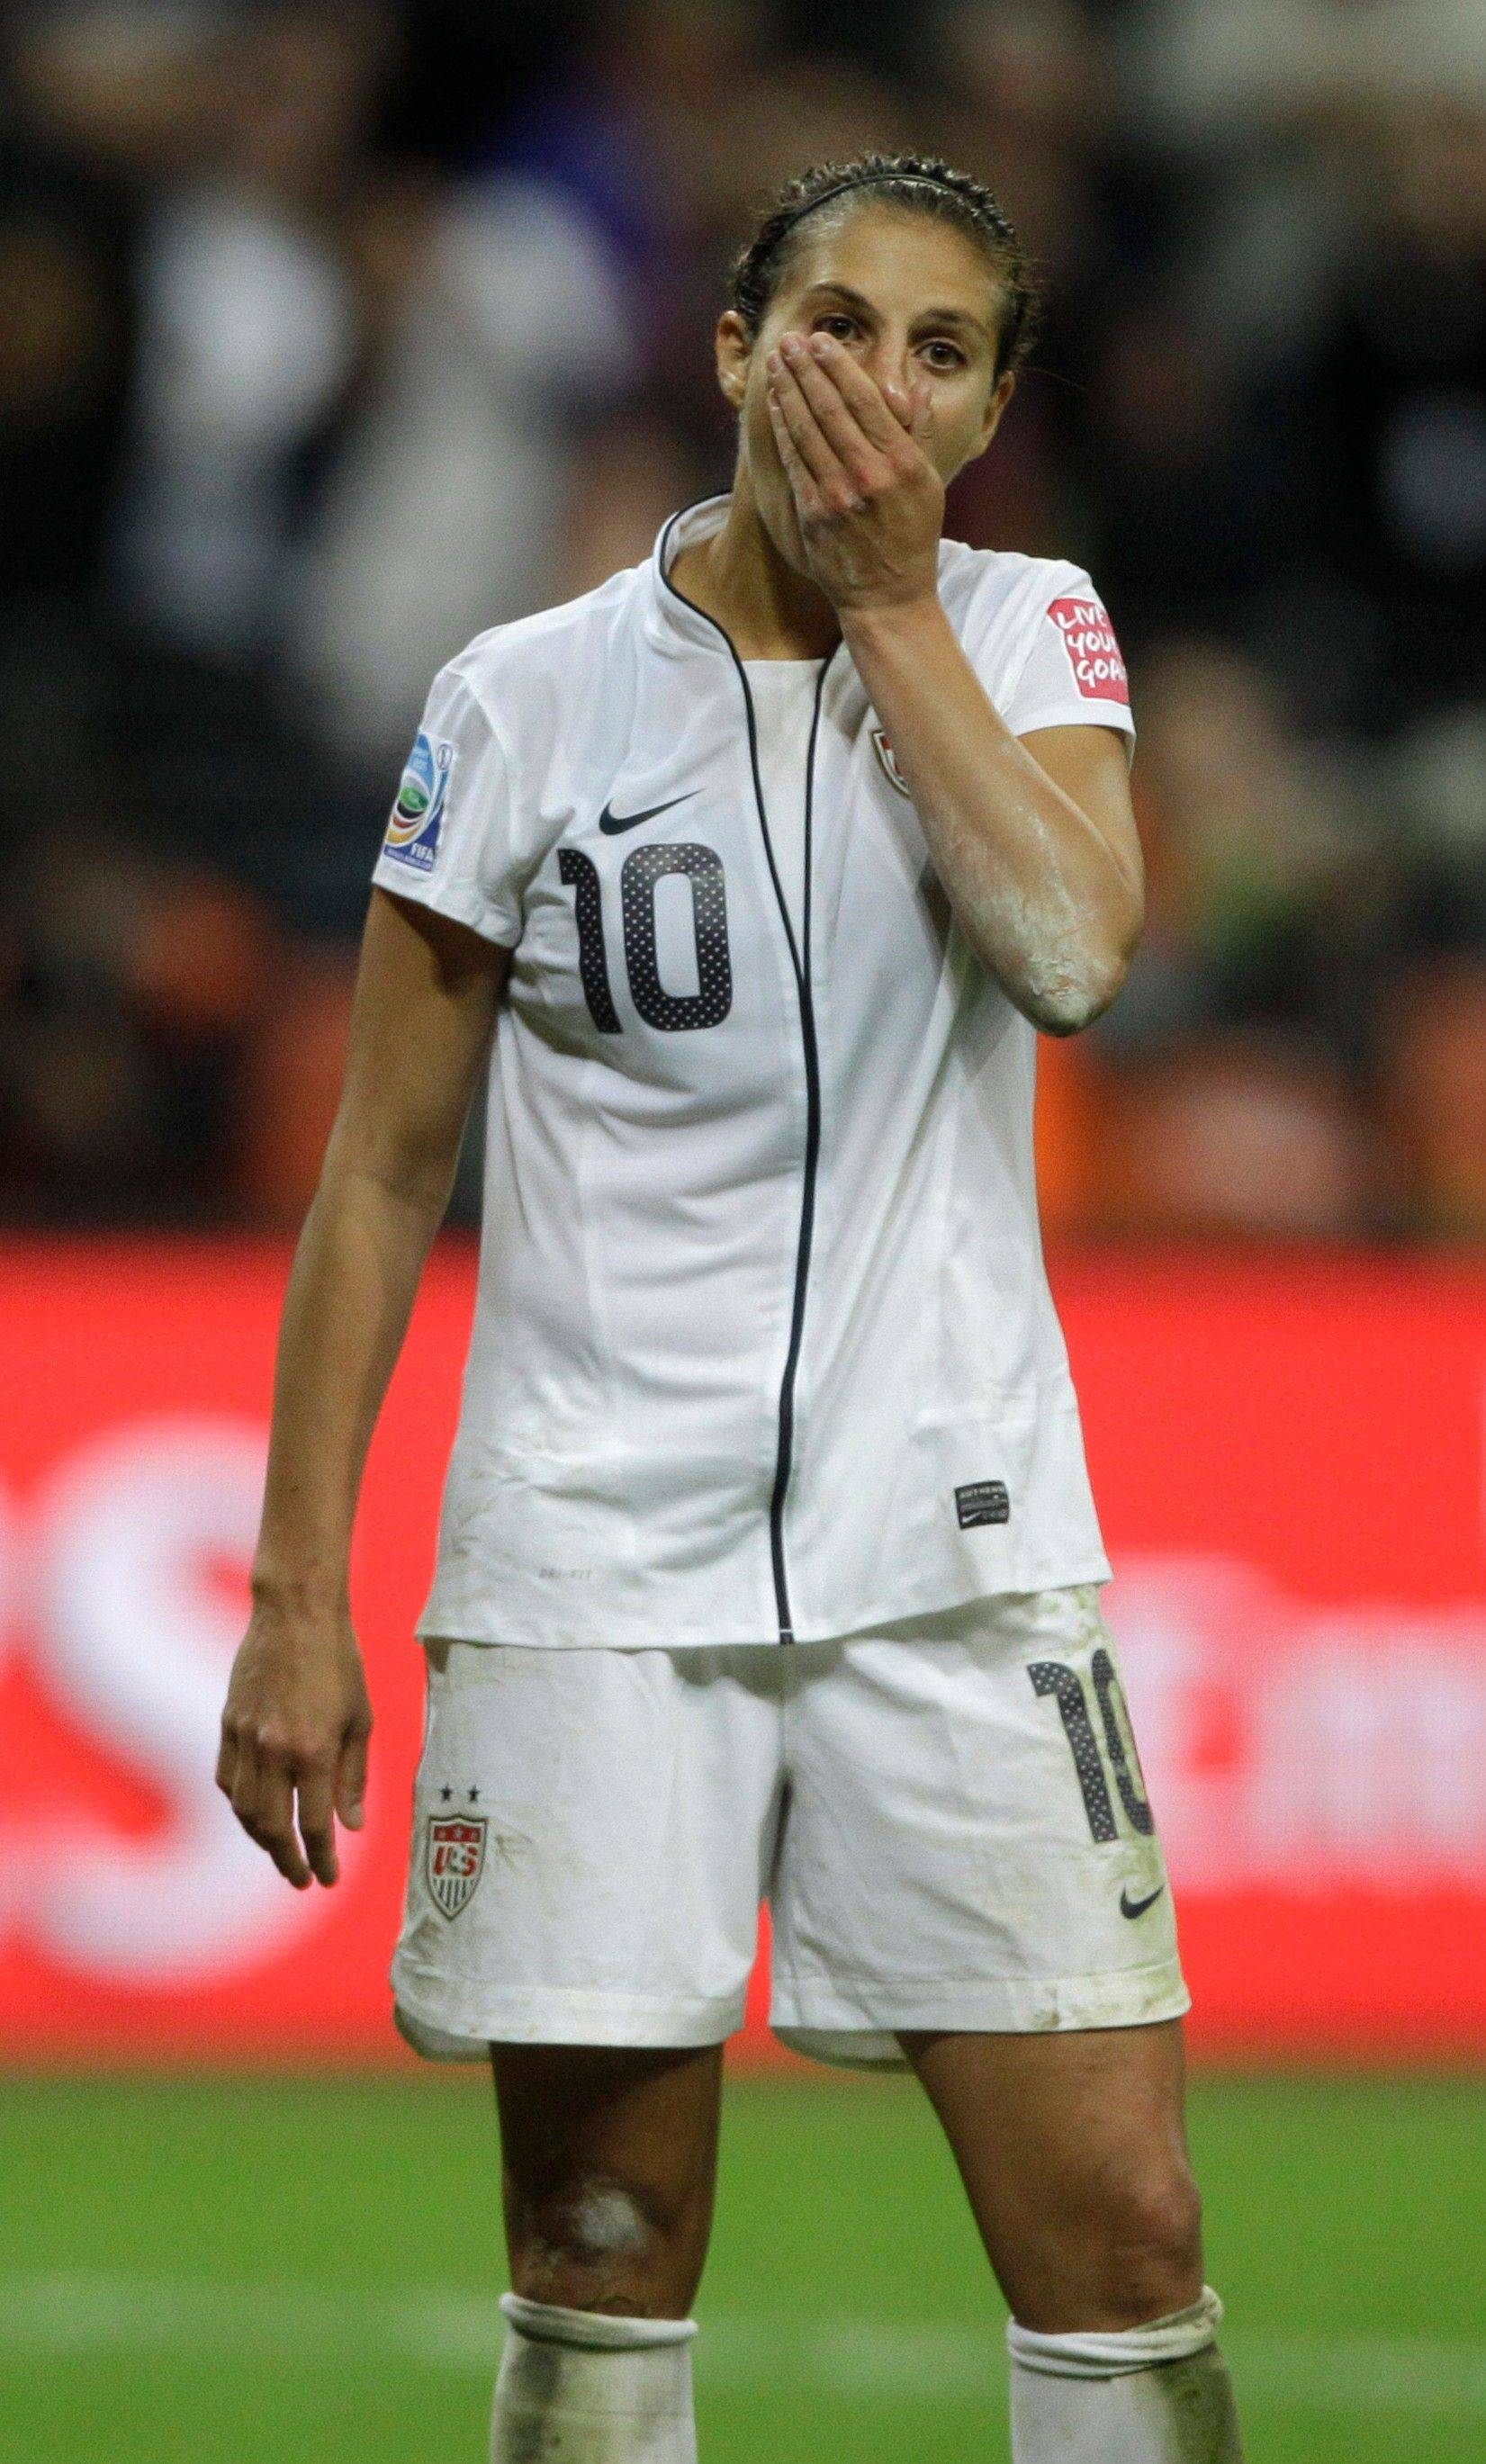 United States soccer playr Carli Lloyd reacts Sunday after missing from the penalty spot during the penalty shoot-out of the final match between Japan and the United States at the Women's World Cup in Frankfurt, Germany.